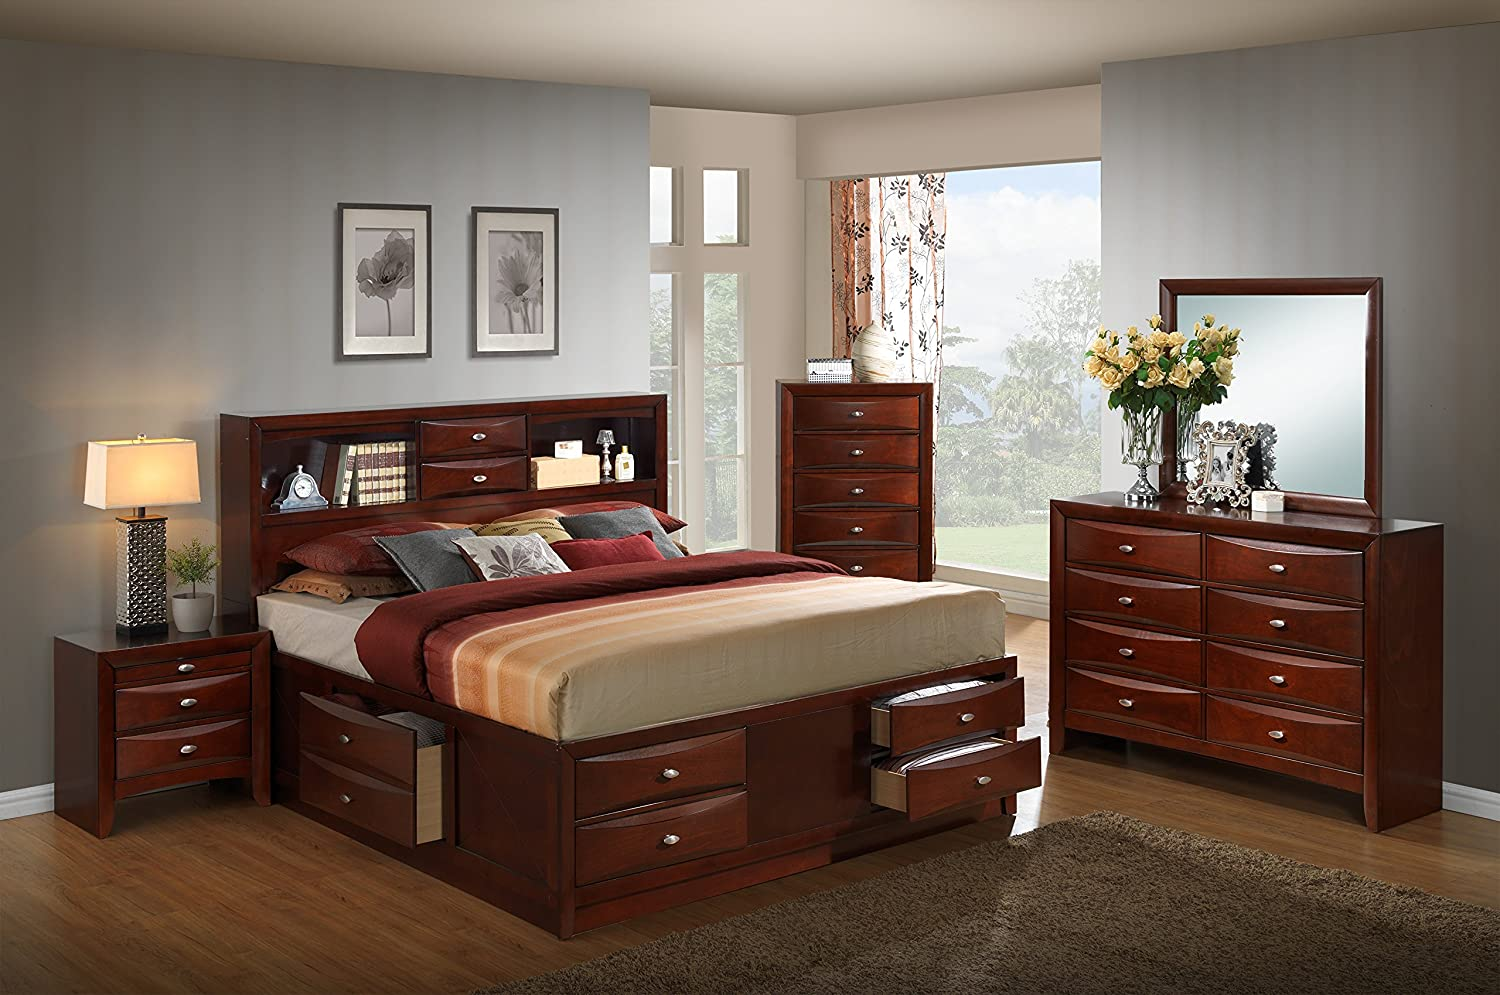 Roundhill Furniture Emily 111 Wood Storage Bed Group with Queen Bed, Dresser, Mirror, Night Stand and Chest, Merlot